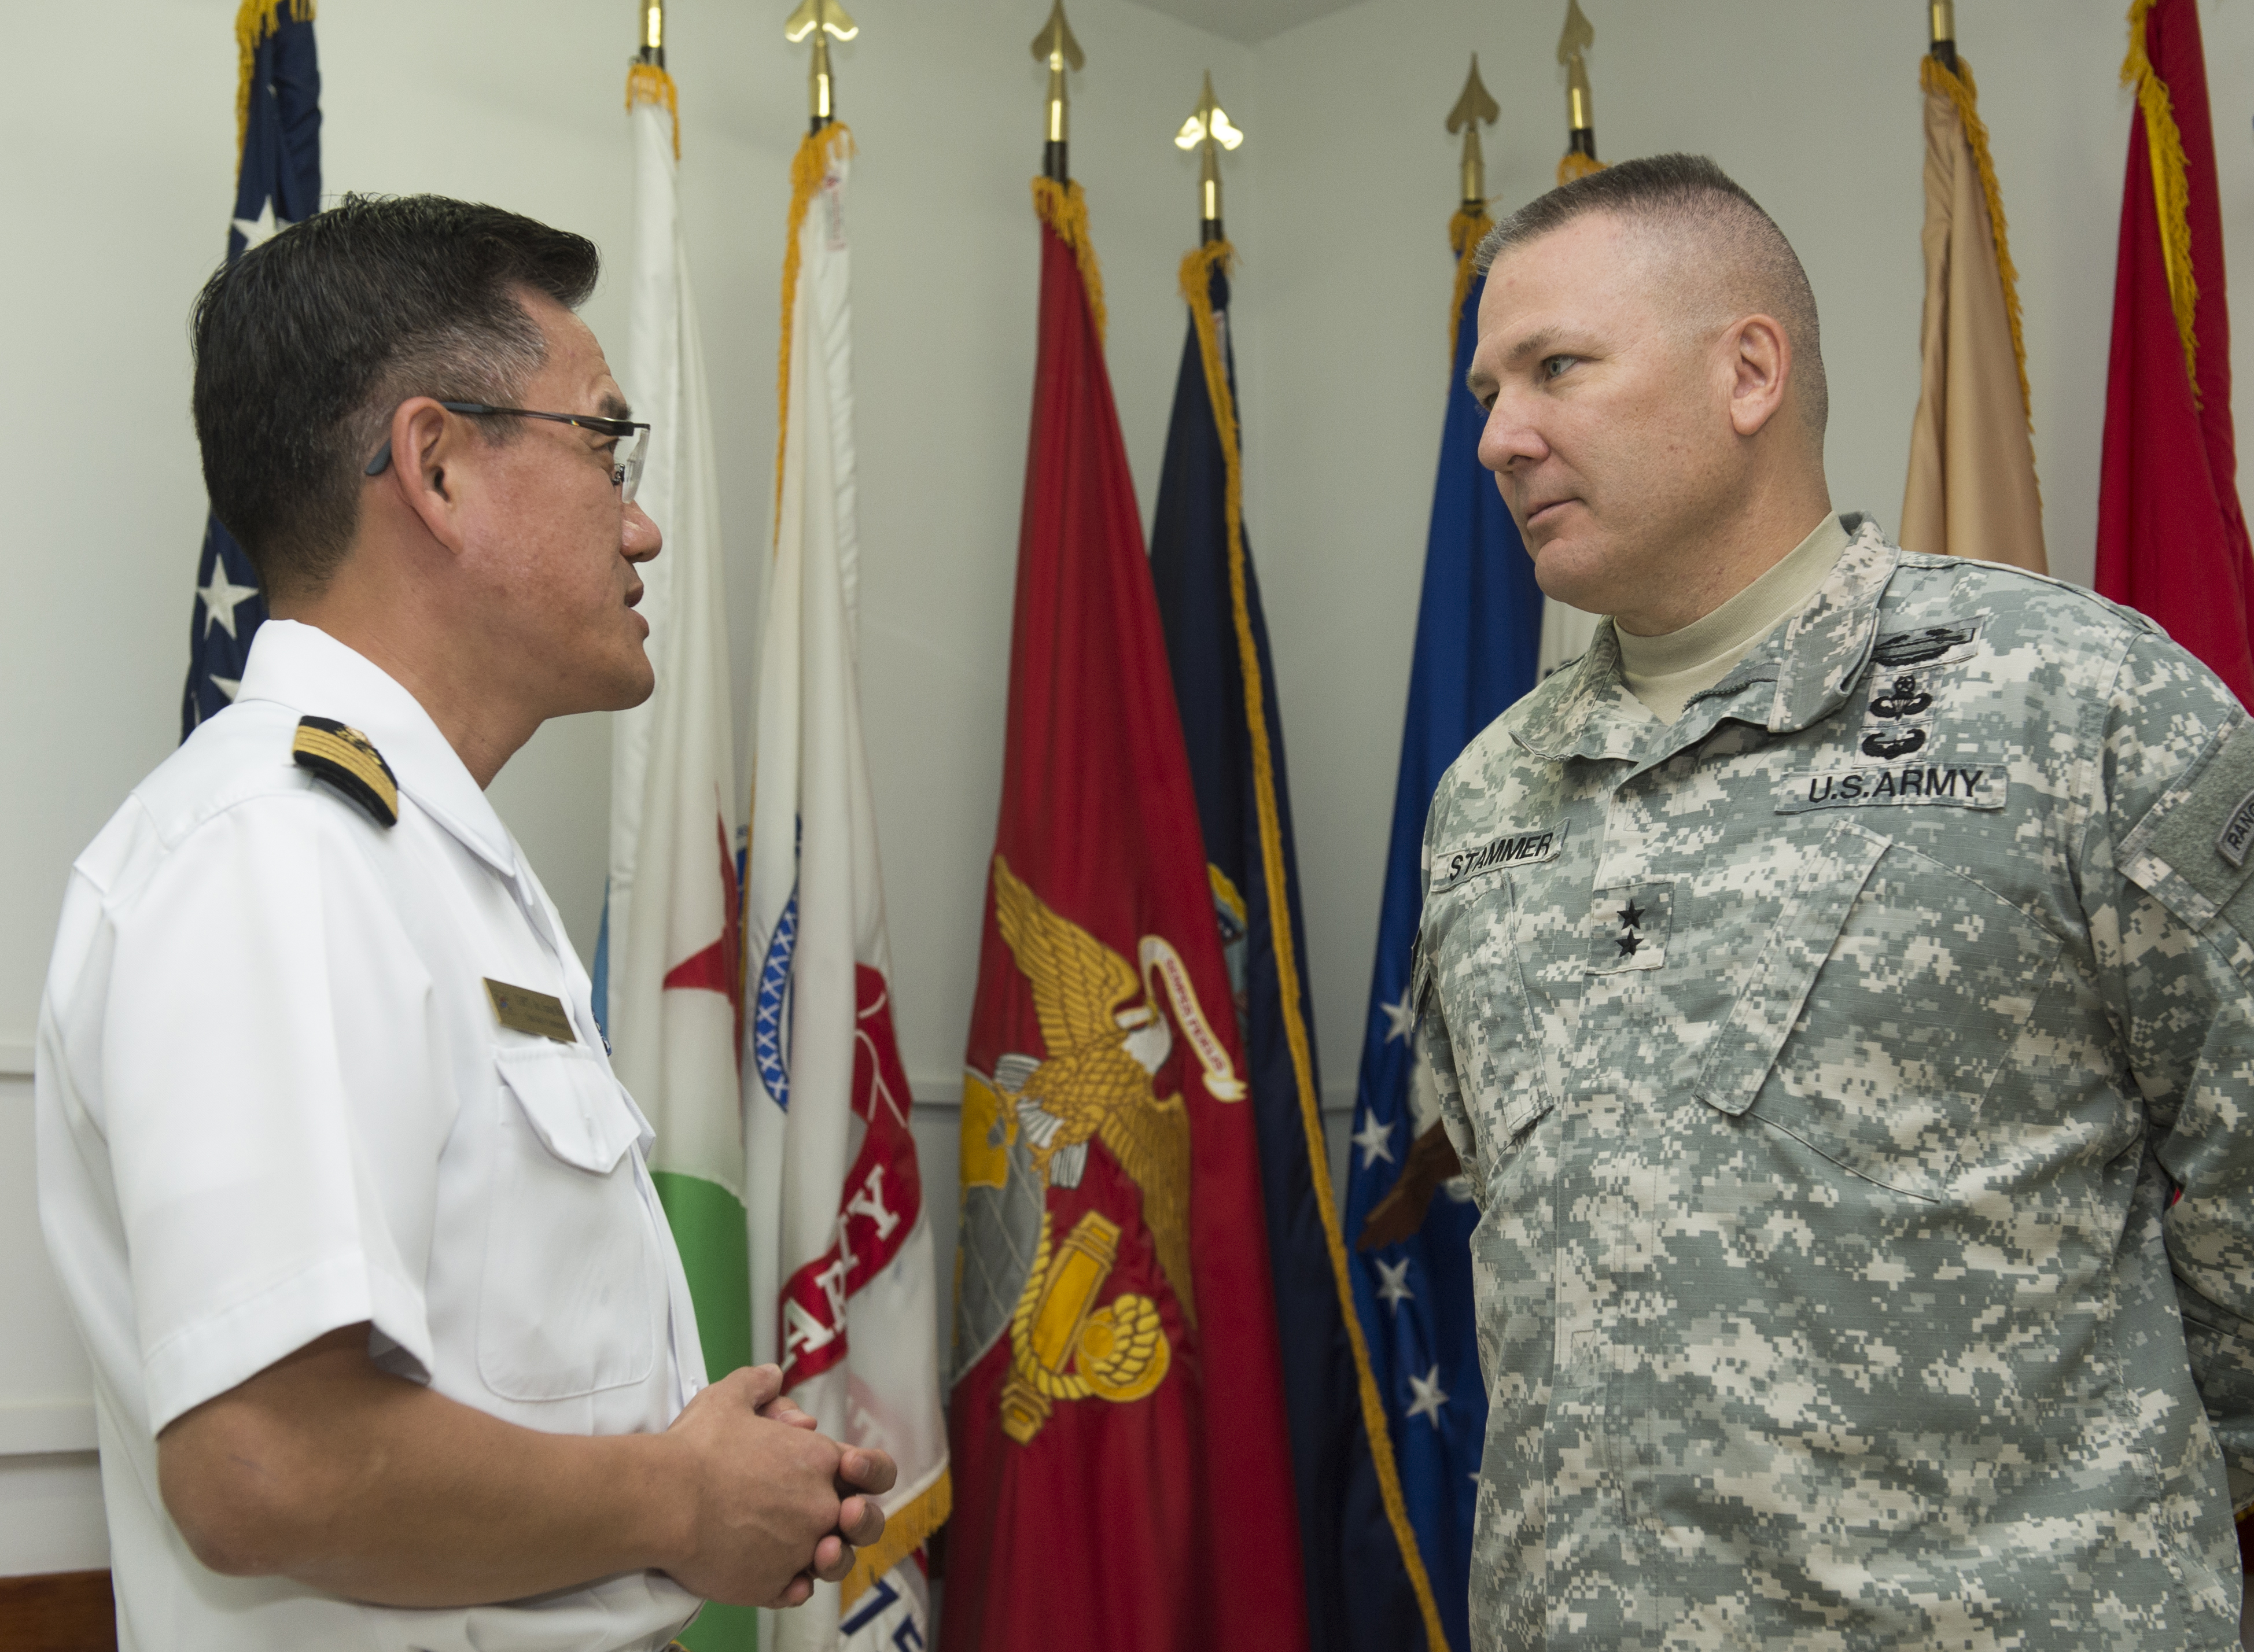 Maj. Gen. Mark Stammer meets with Republic of Korea Navy Capt. Sangmin An, ROK Naval Escort Task Group 20th commander, Dec. 21, 2015, at Camp Lemonnier, Djibouti. The Republic of Korea provides two foreign liaison officers who support the sharing of information and best practices between CJTF-HOA and the Republic of Korea. Capt. Sangmin An invited members of CJTF-HOA to celebrate the 70th anniversary of the inauguration of the Republic of Korea's Navy and the ongoing, mutually beneficial relationship between the United States and Republic of Korea. (U.S. Air Force photo by Senior Airman Peter Thompson)